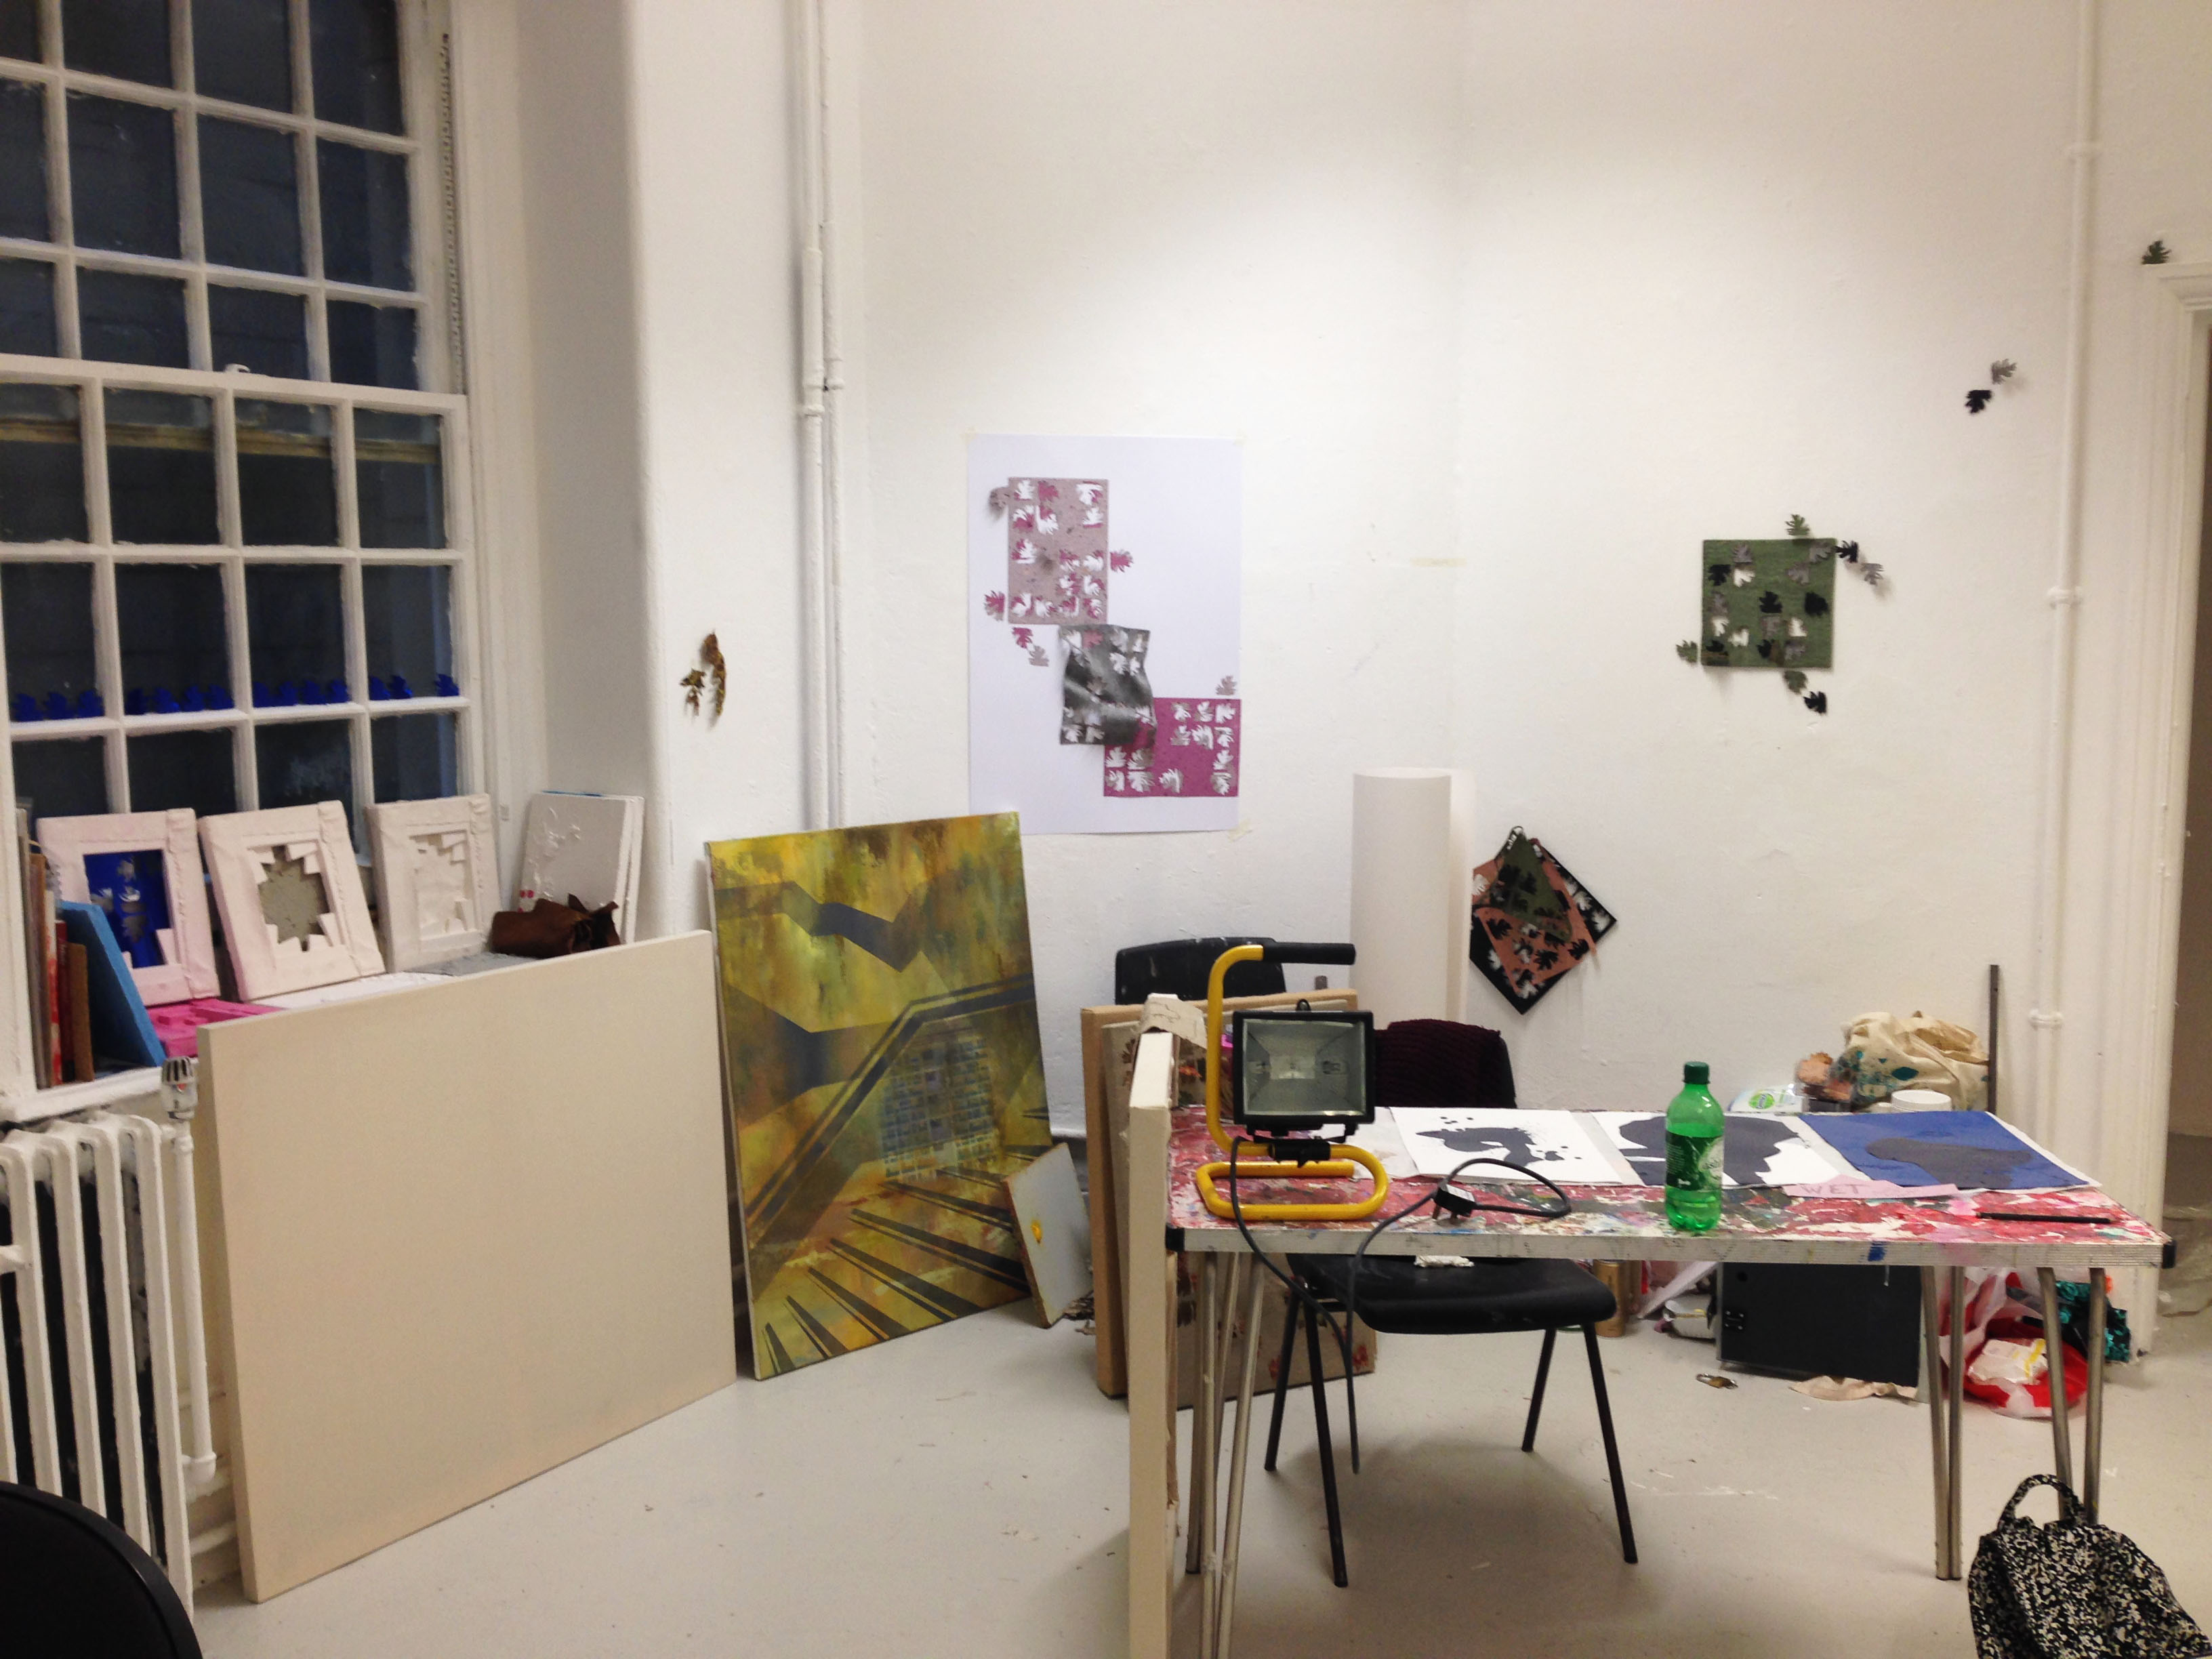 Sarah Porter's studio space, image courtesy of the artist